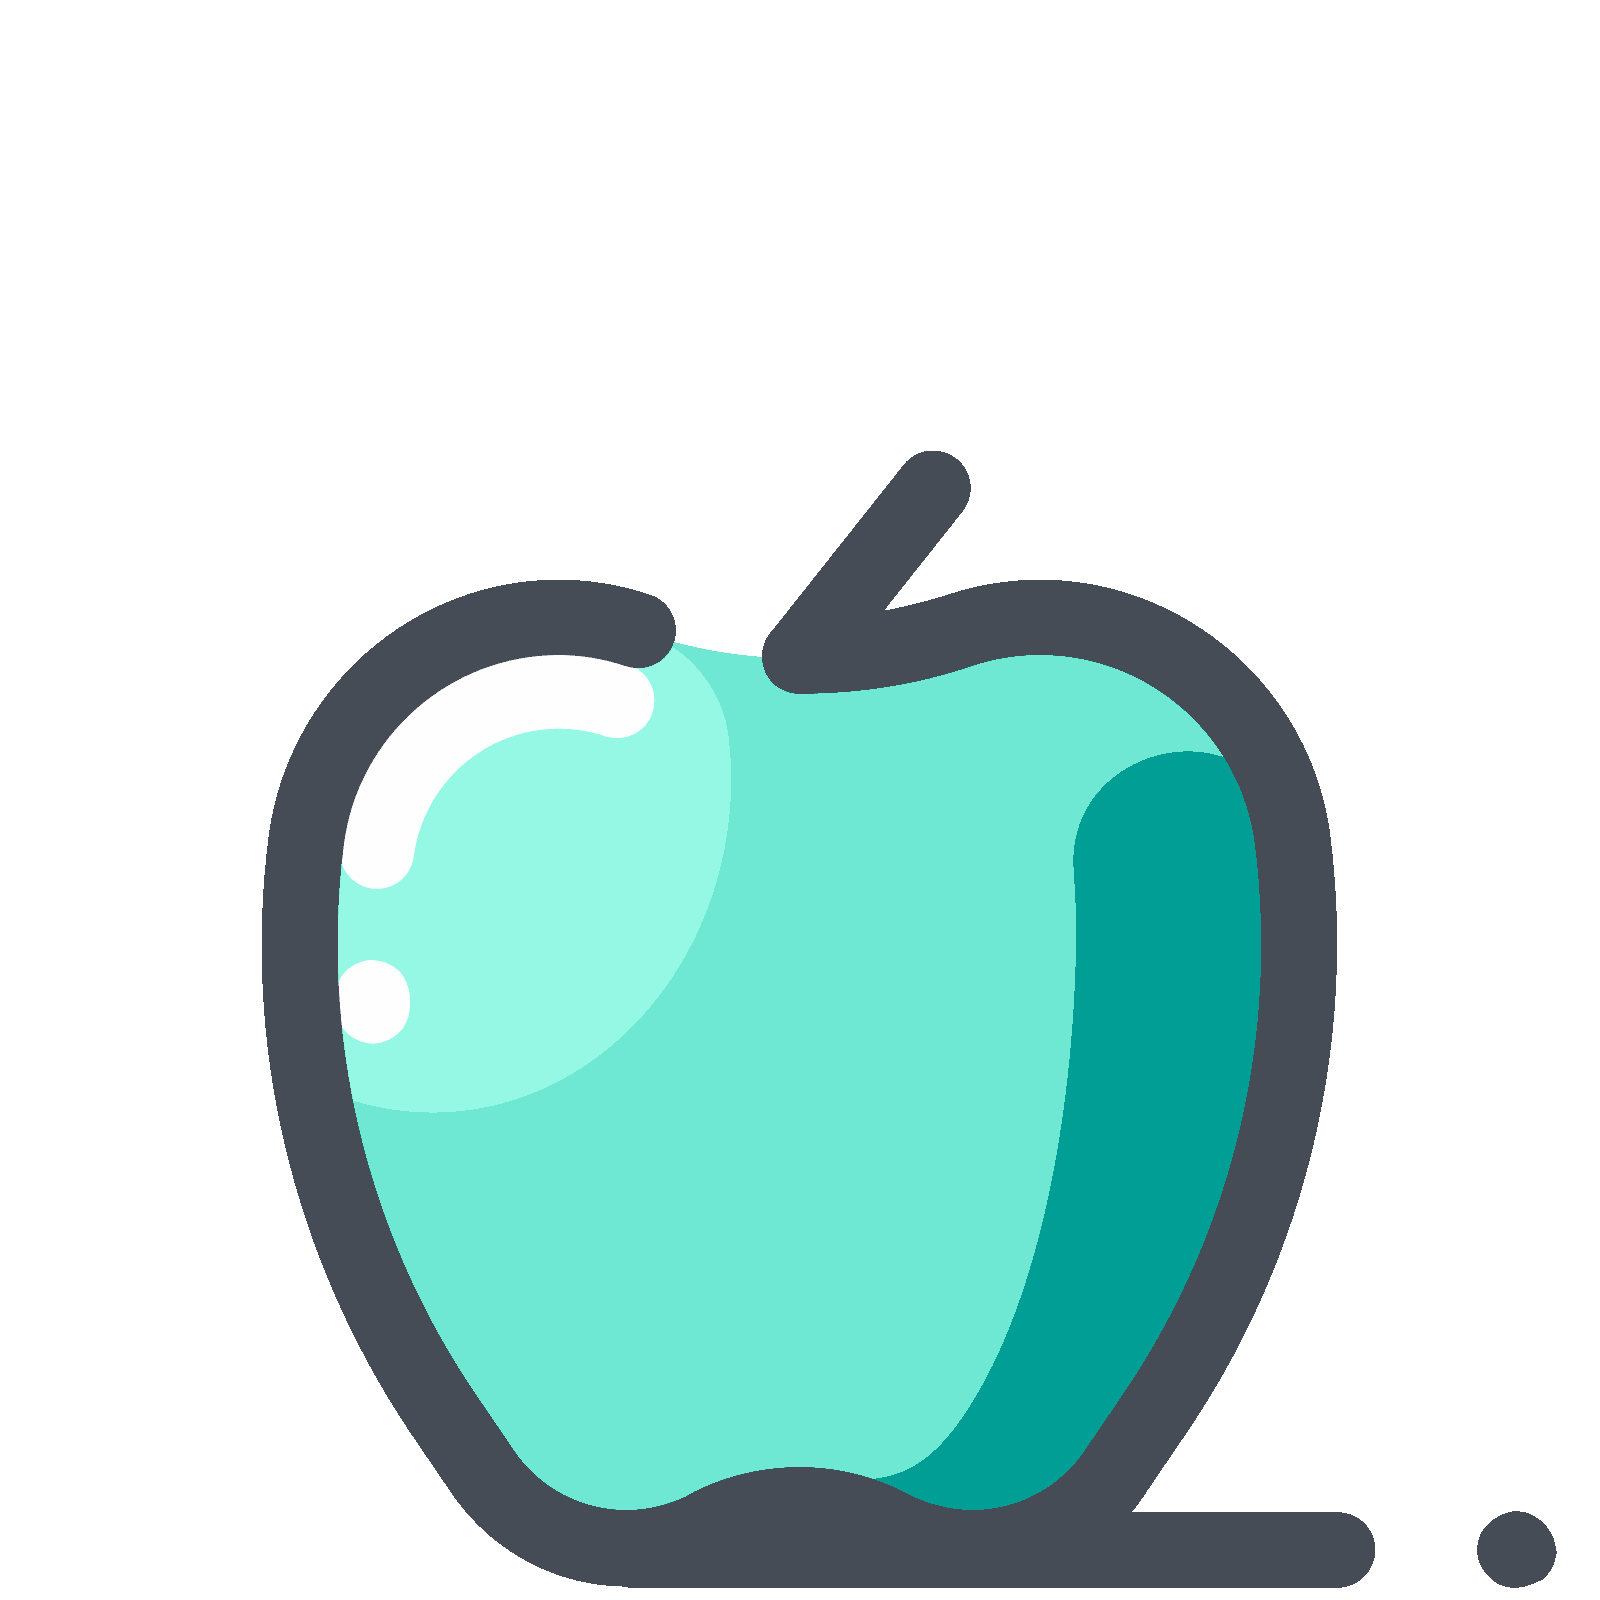 Computer icons clip art. Apple icon png